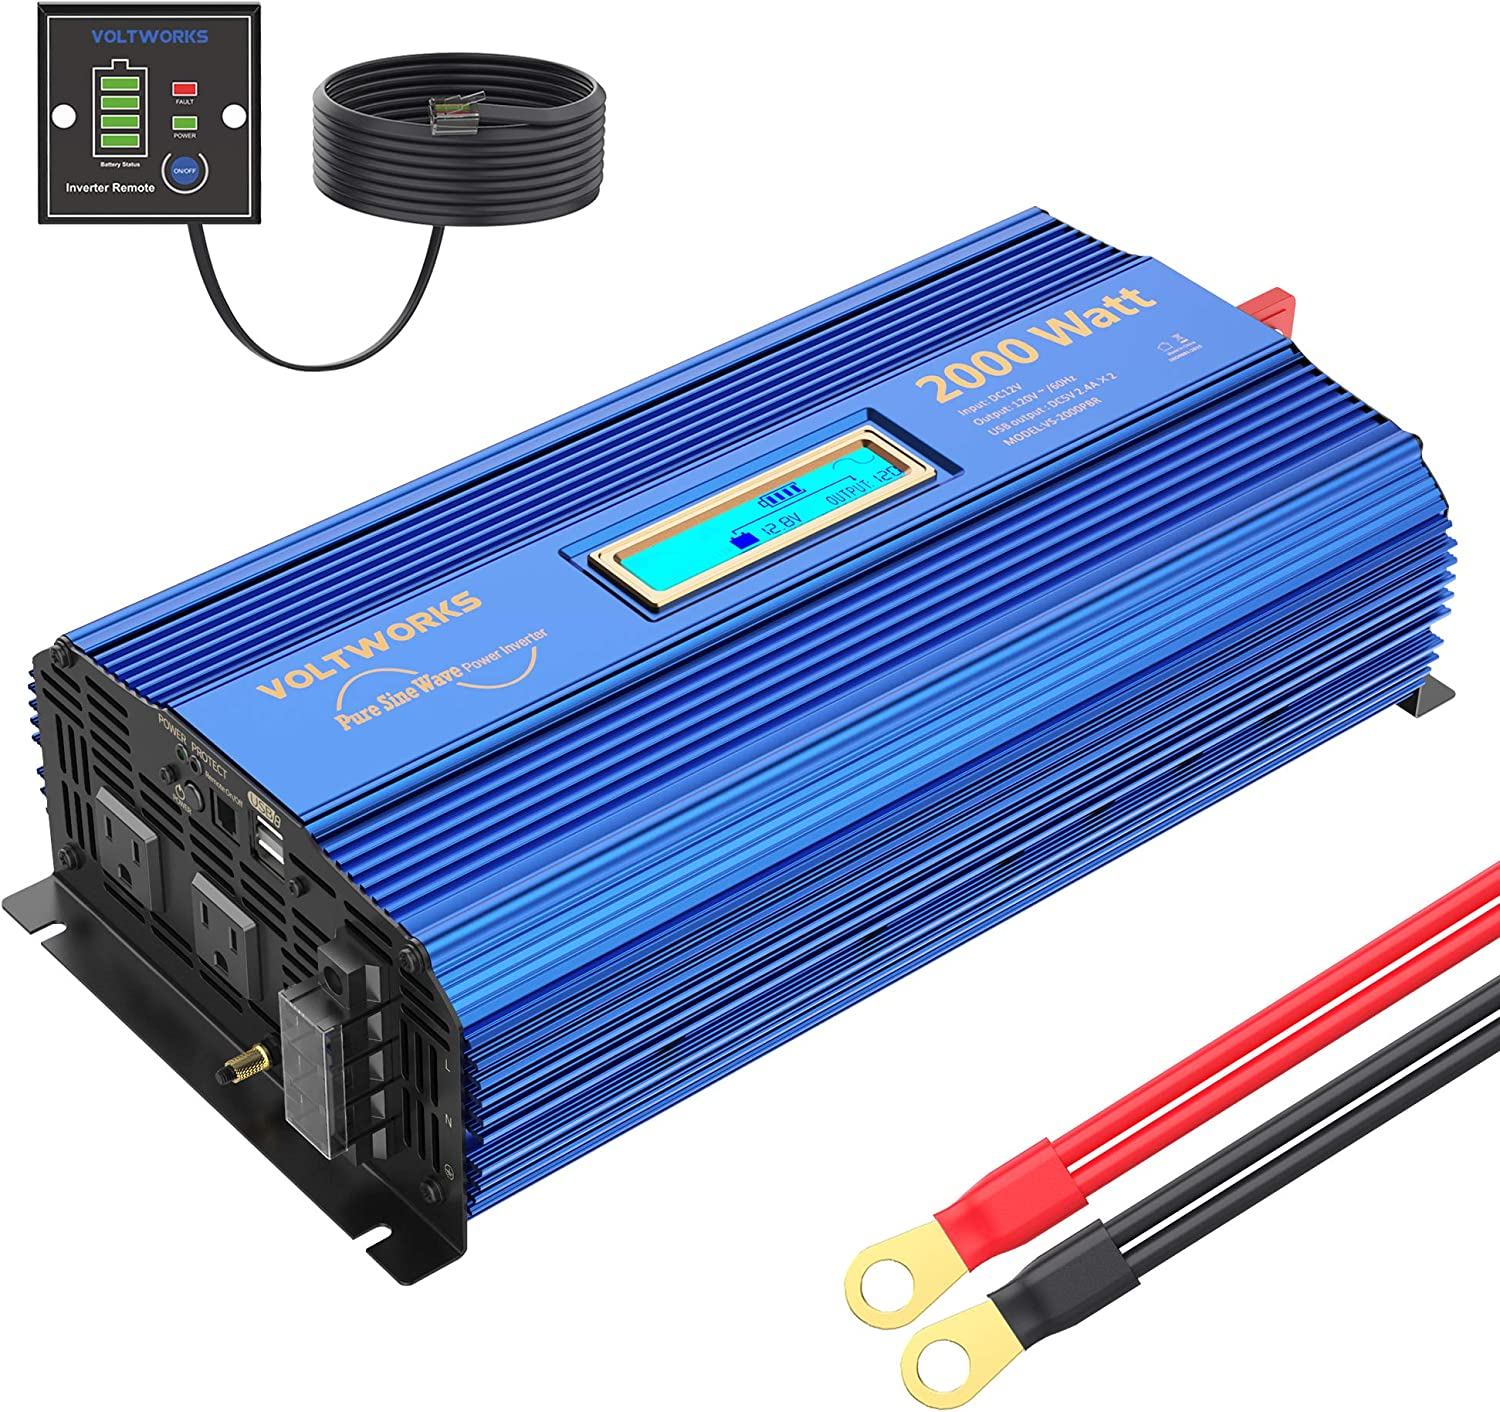 LEEKINO Pure Sine Wave Power Inverter 2000 Watts DC 12V to 240V AC Converter with LCD Display and 5m Remote Controller Peak Power 4000W 3 AC Outlets /& 2 USB Port